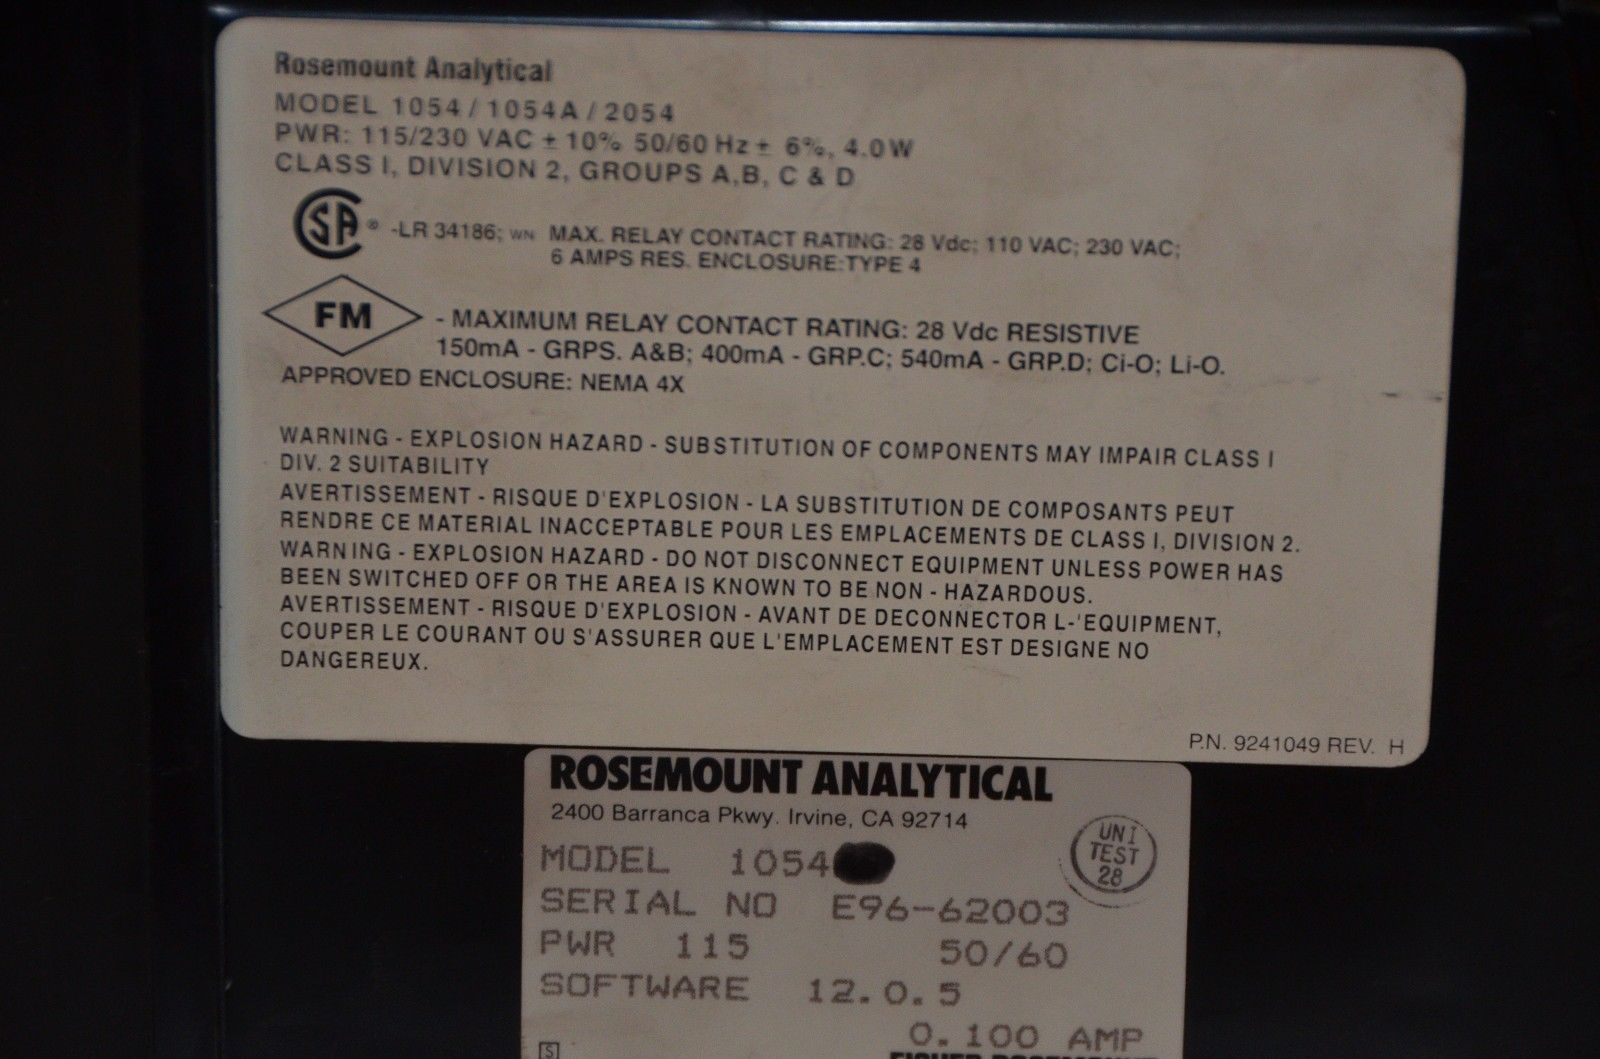 Rosemount Analytical Model 1054 A Percent and similar items